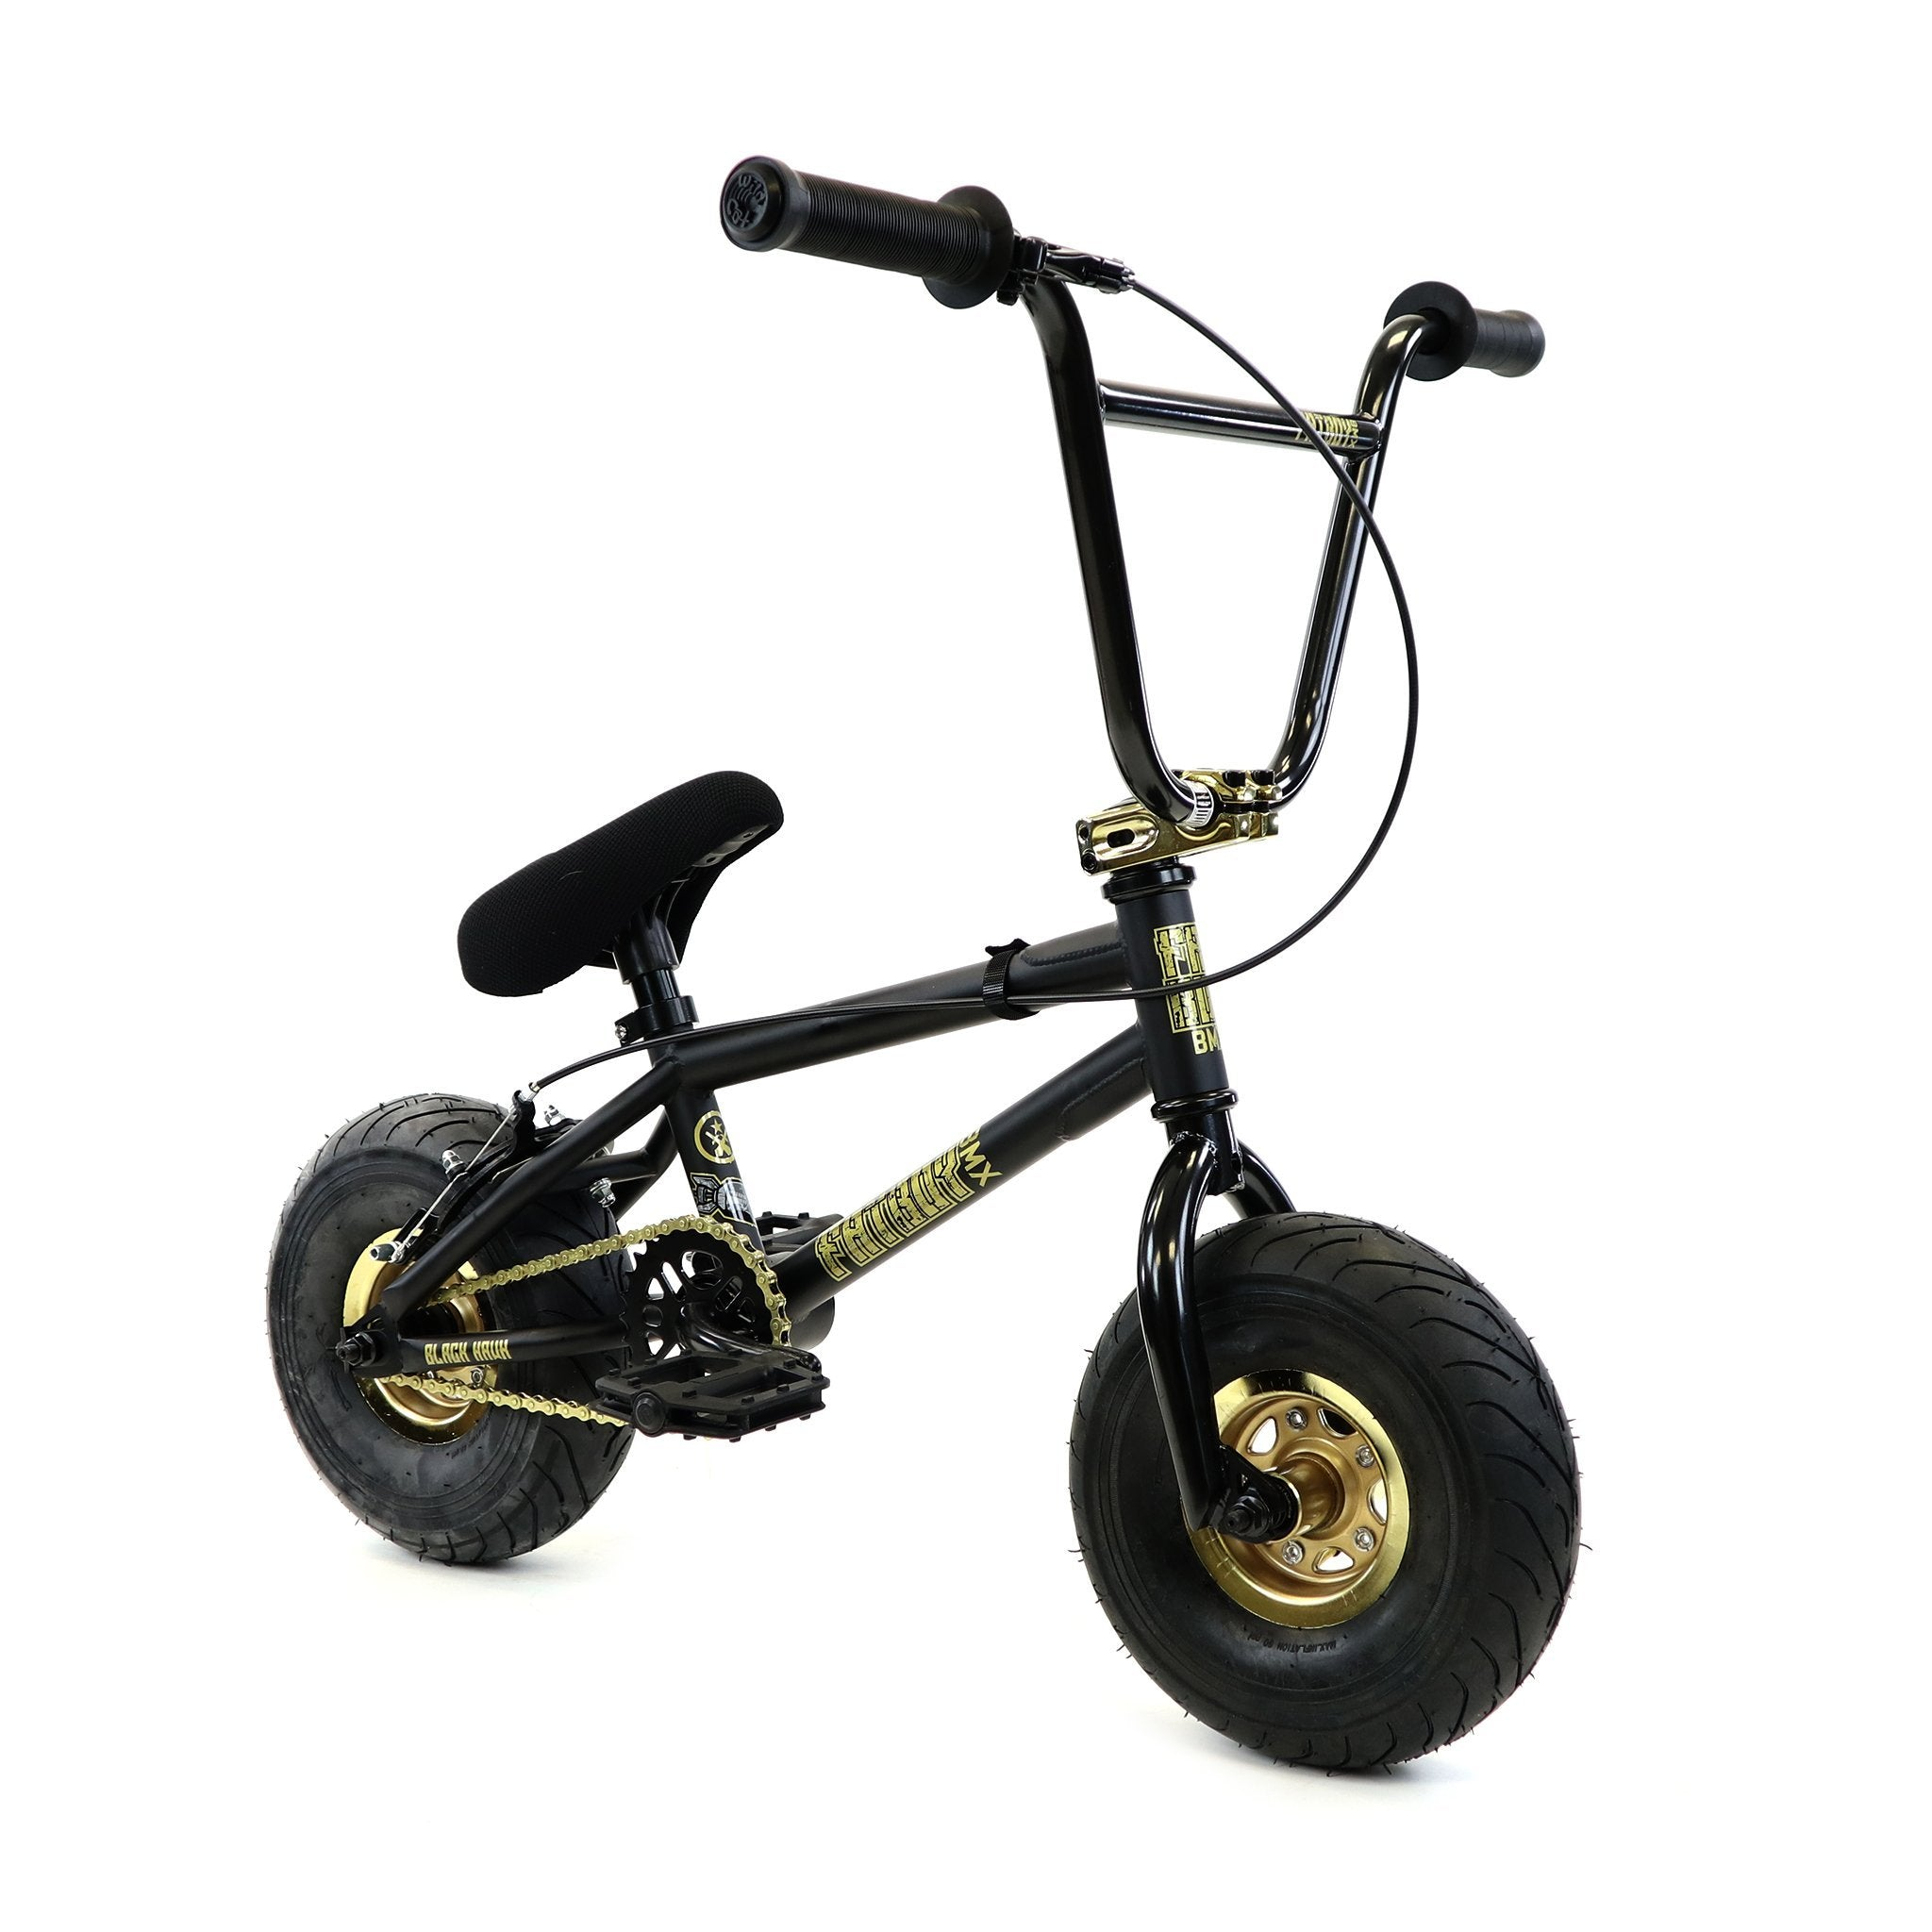 "FatBoy | Stunt 10"" Mini BMX Bike - Black Thunder Gold, Bike, FatBoy 